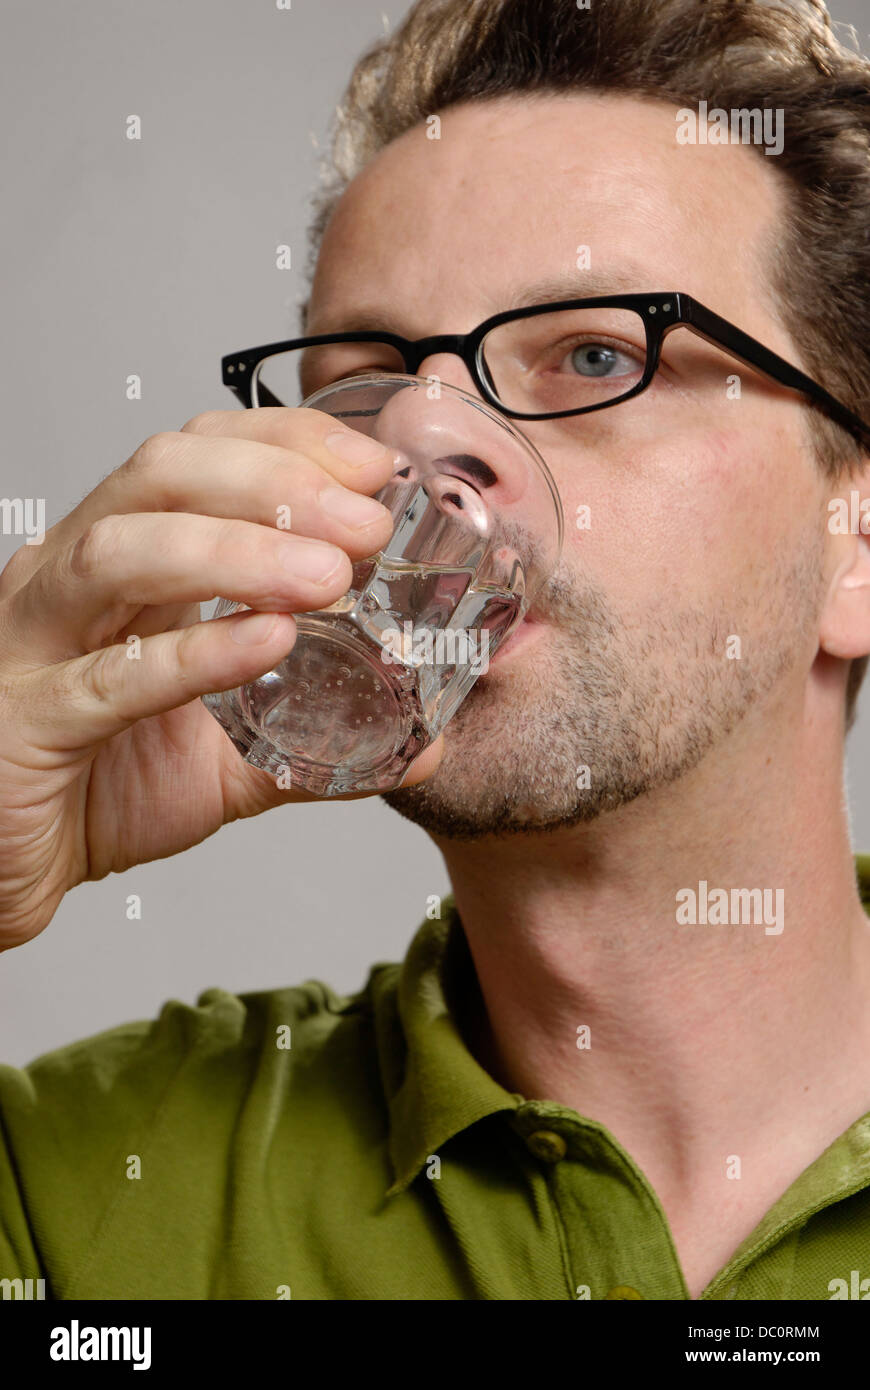 A man drinks a glass of water Stock Photo